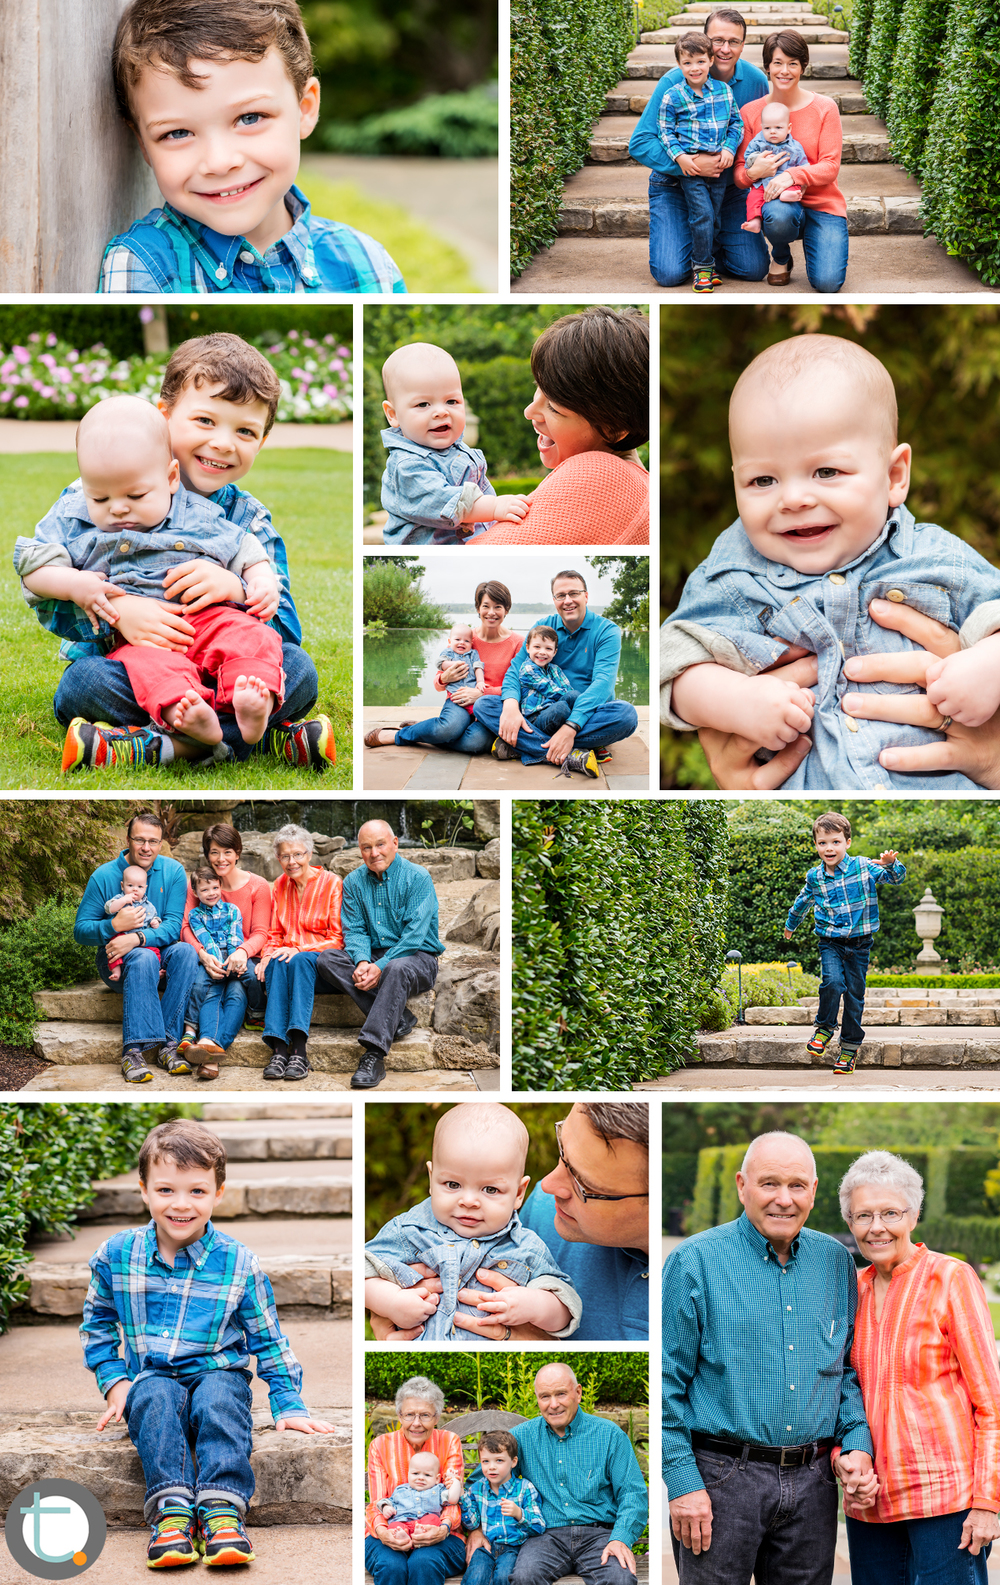 baby_child_arboretum_dallas_grandma_grandpa_TracyAllynPhotography_2014